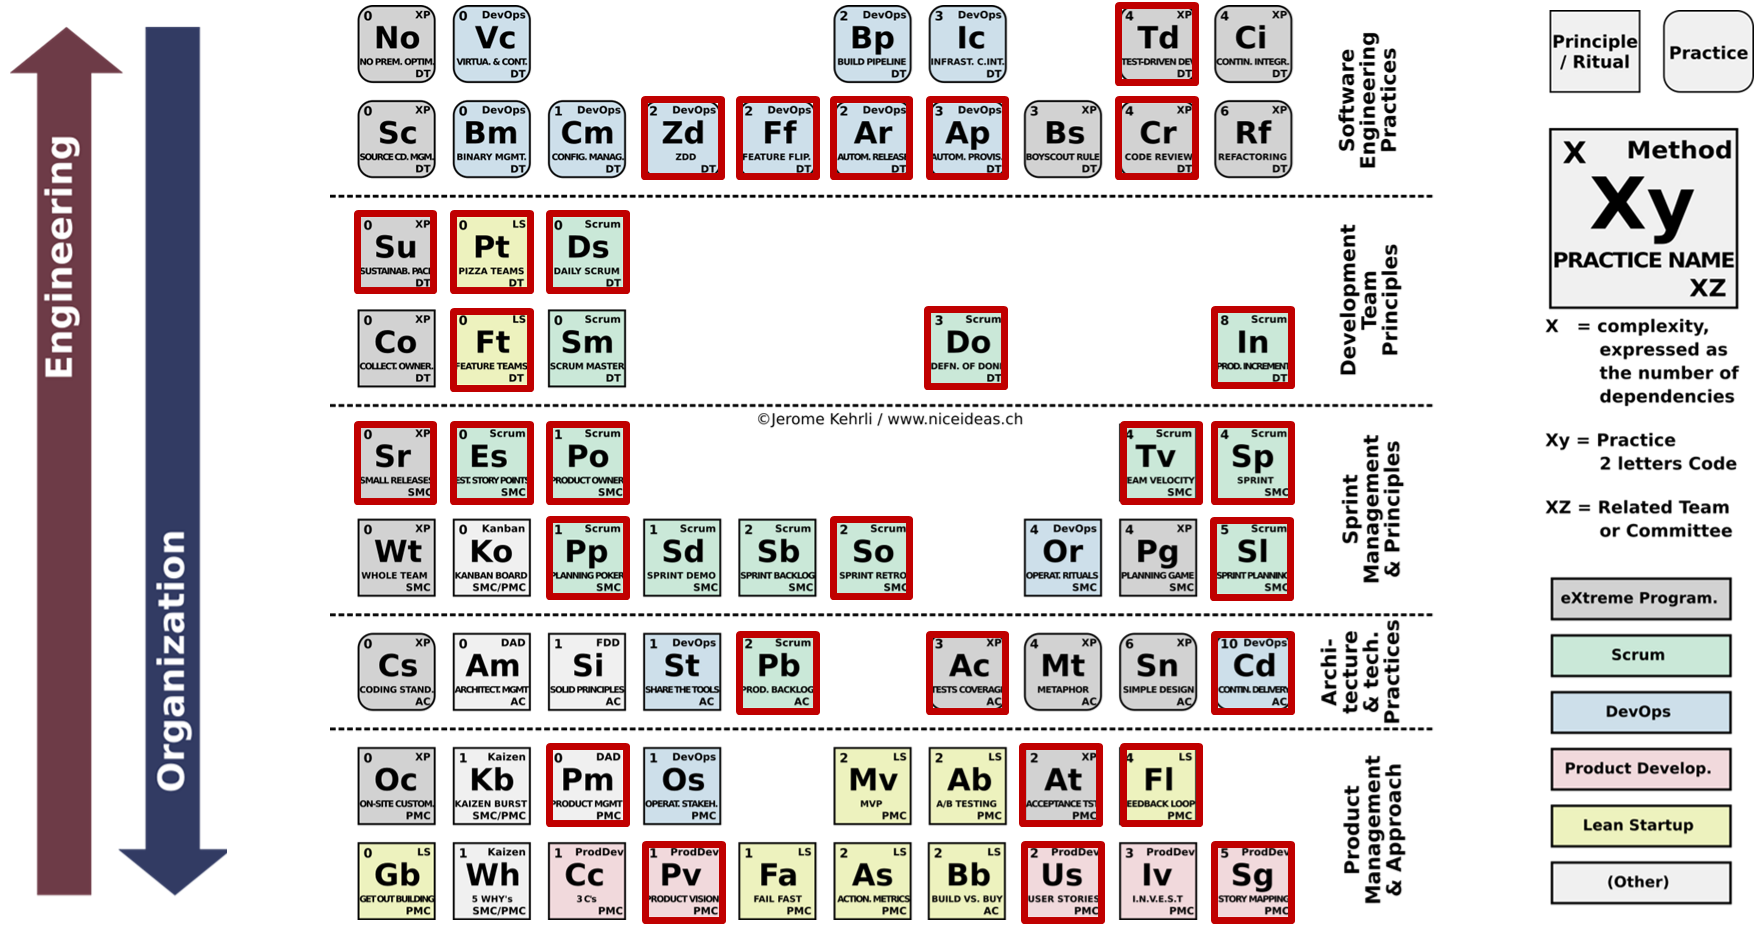 Periodic Table of Agile Principles and practices